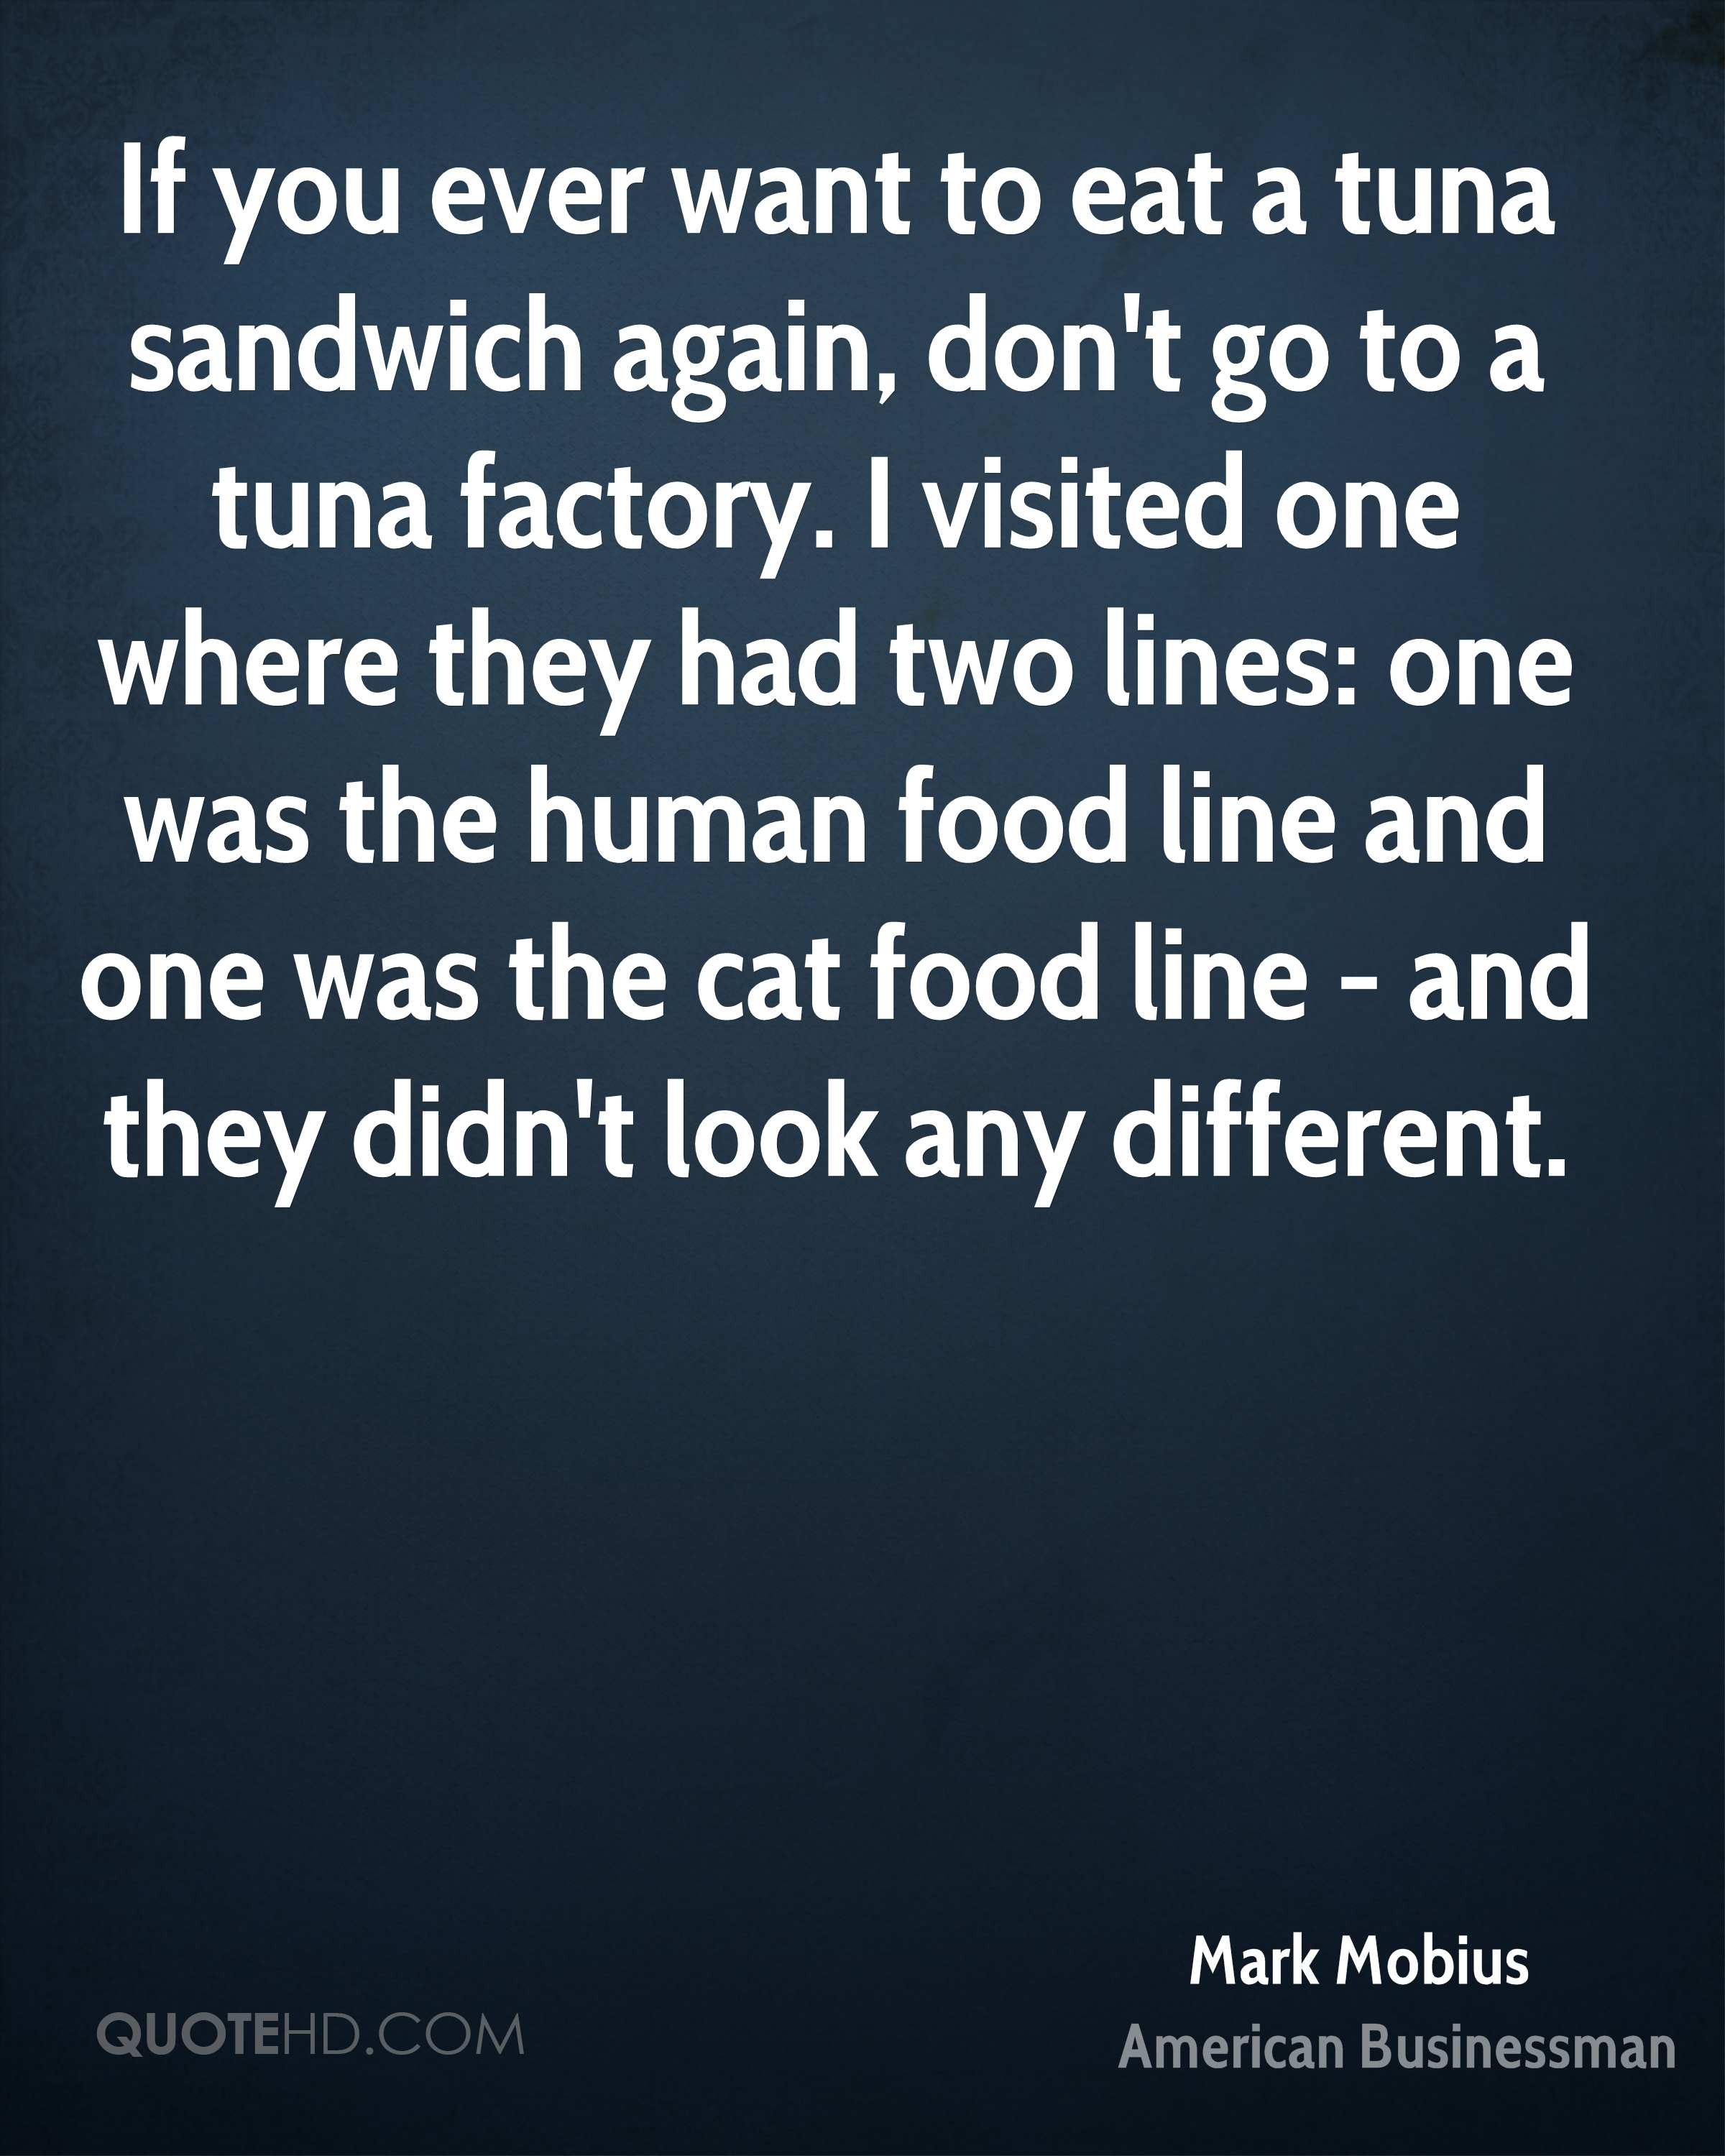 If you ever want to eat a tuna sandwich again, don't go to a tuna factory. I visited one where they had two lines: one was the human food line and one was the cat food line - and they didn't look any different.